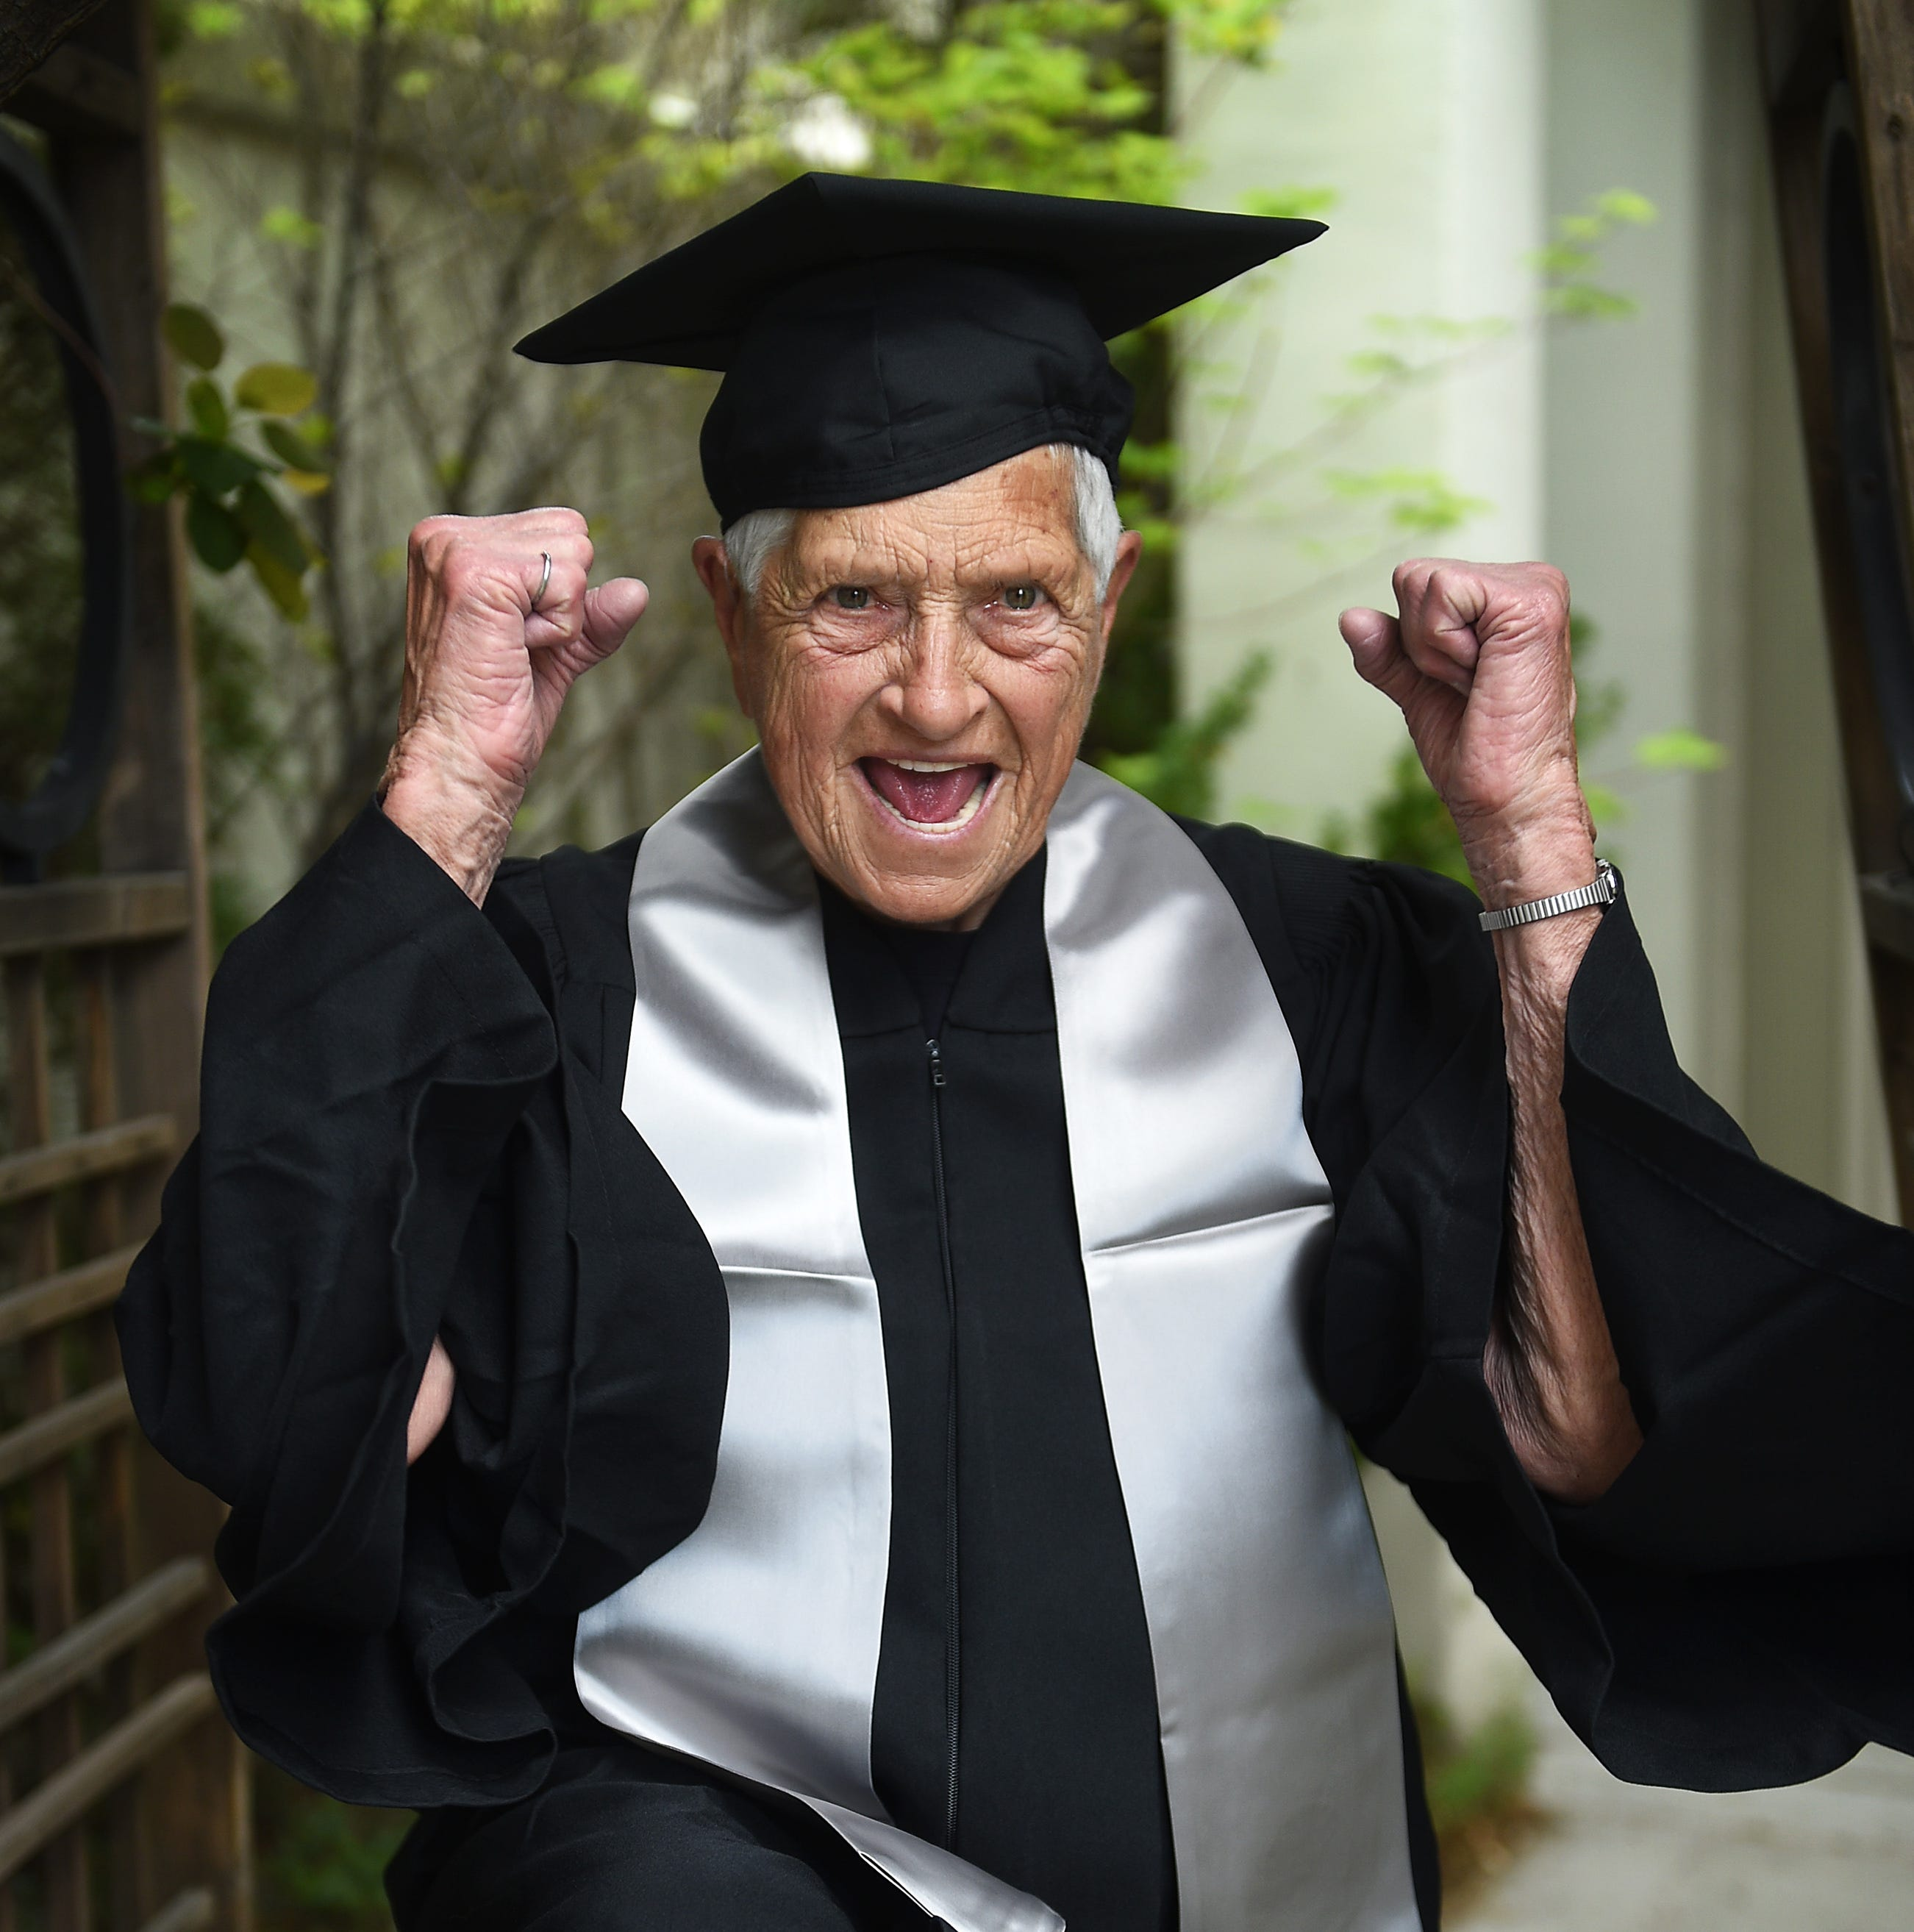 Reno woman, 90, who will walk at UNR's graduation ceremony, says 'dreams do come true'